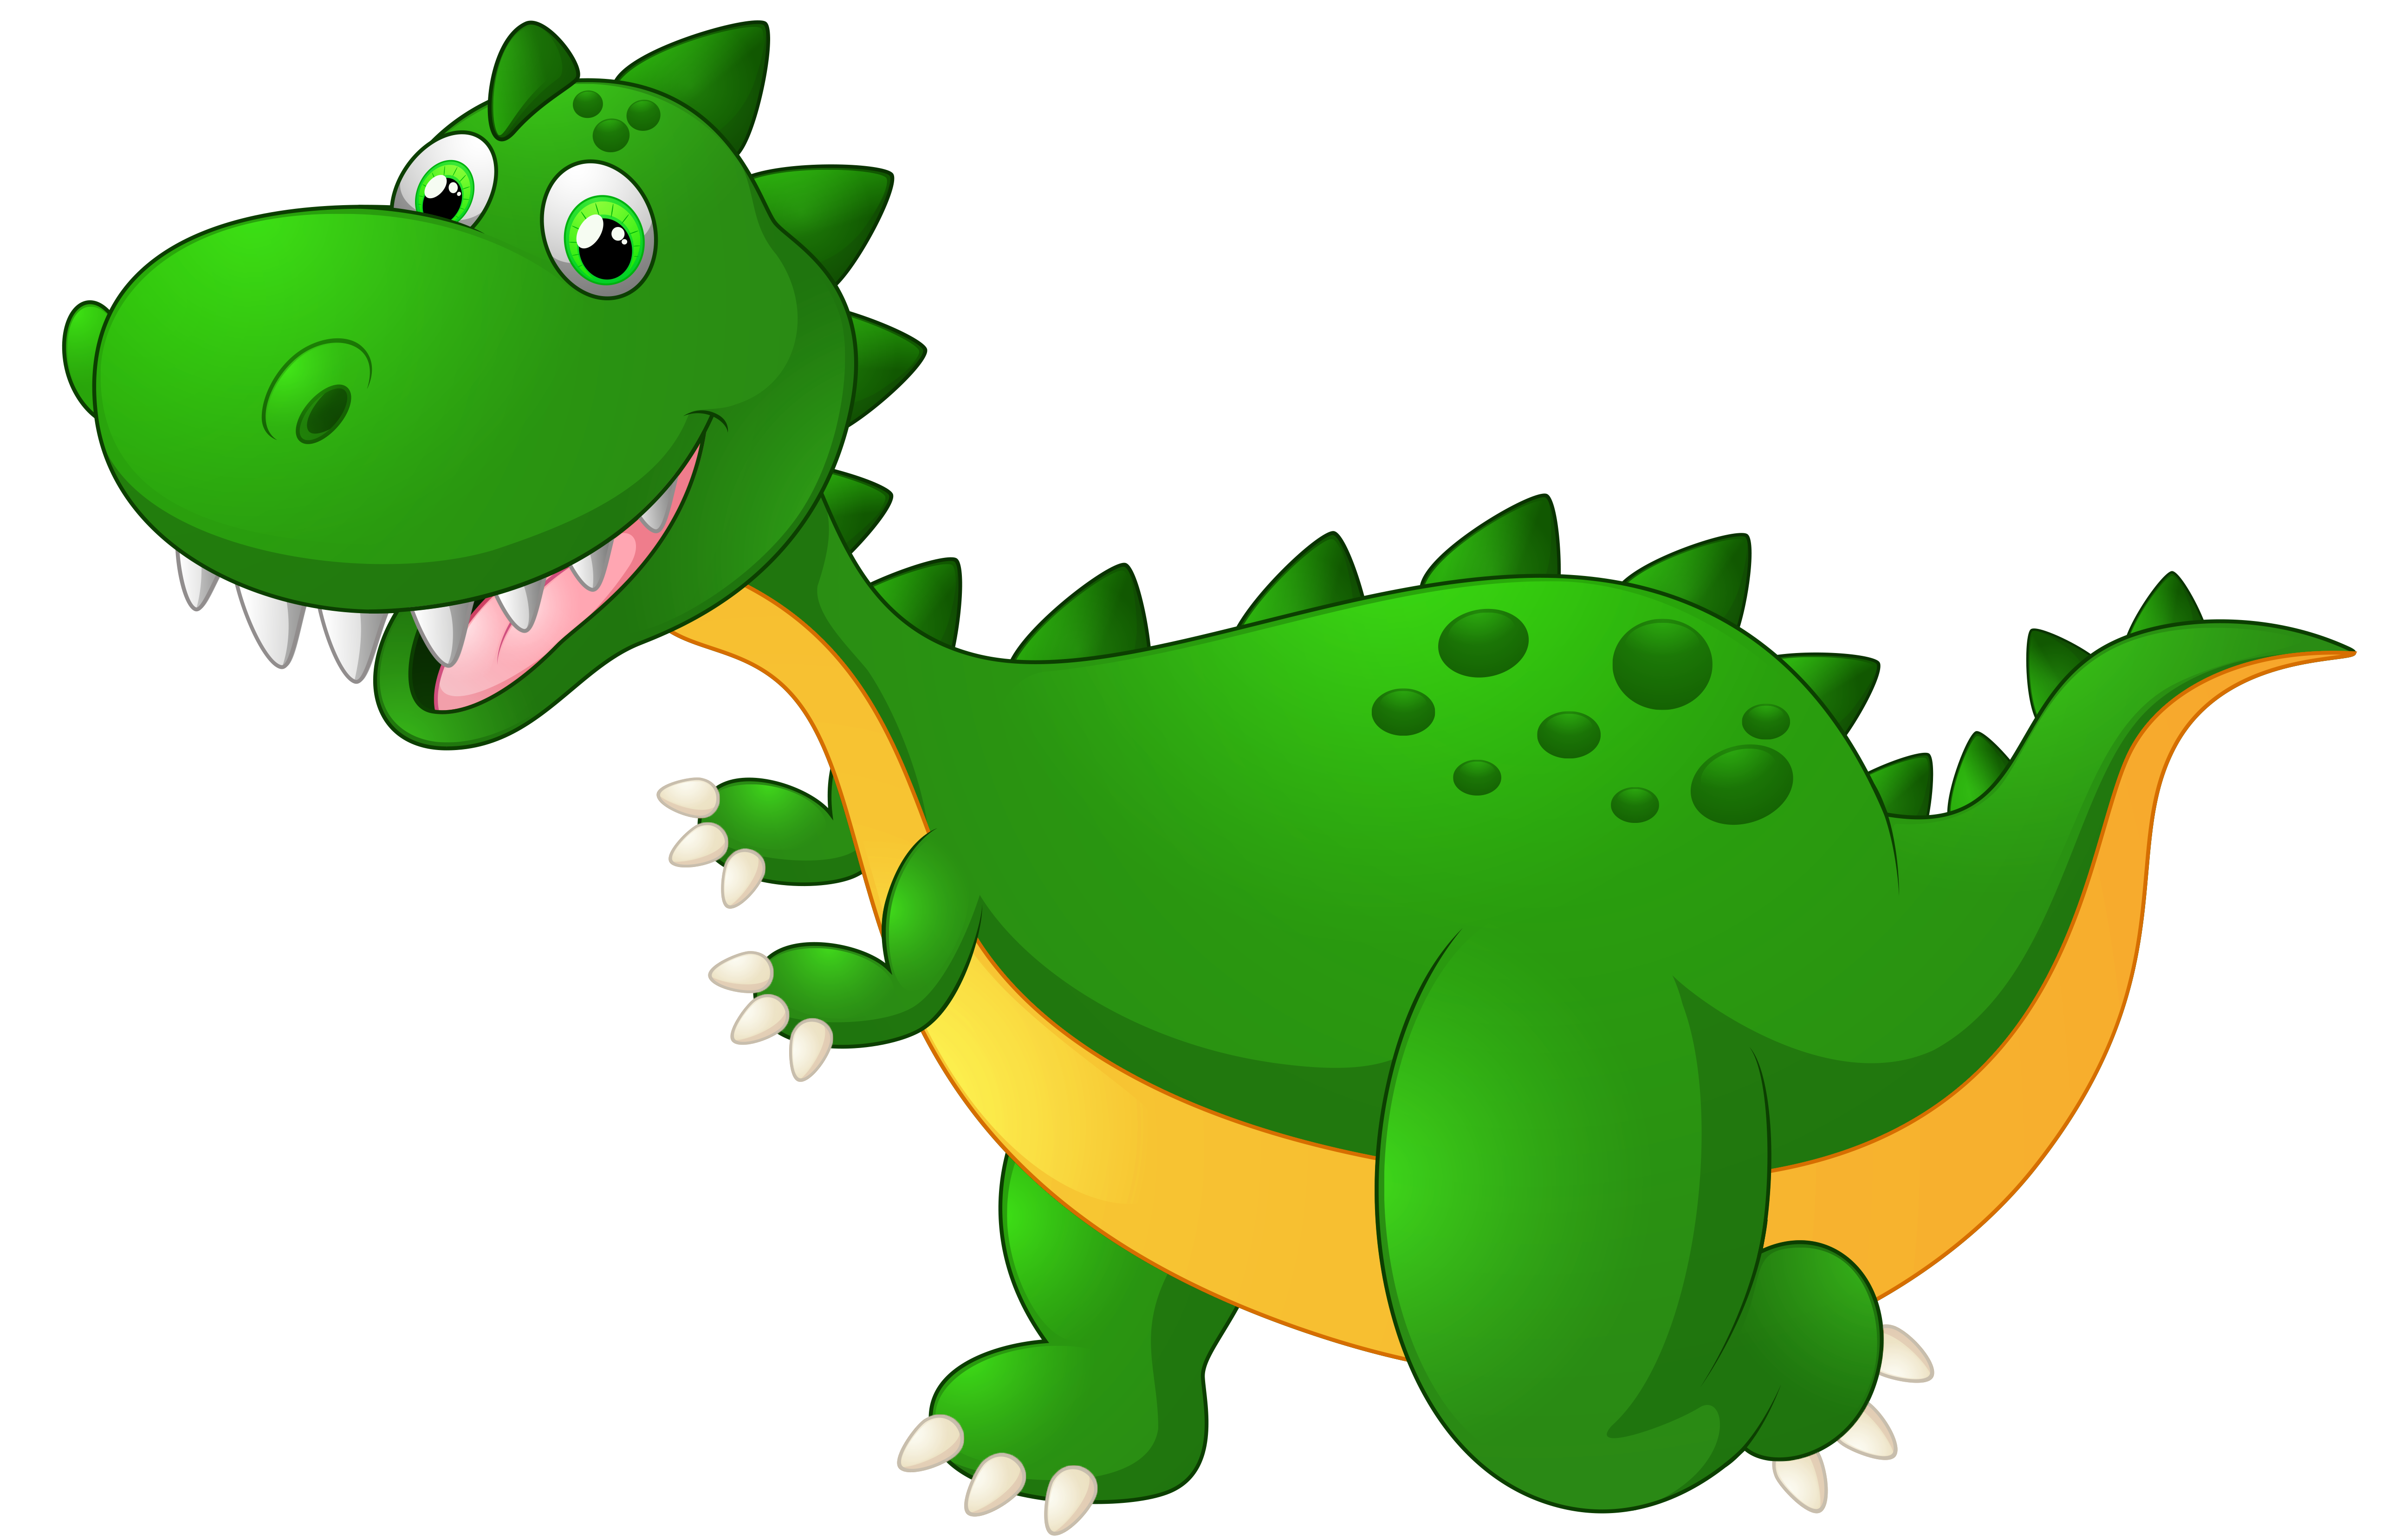 Cartoon dragon png. Cute clipart image gallery